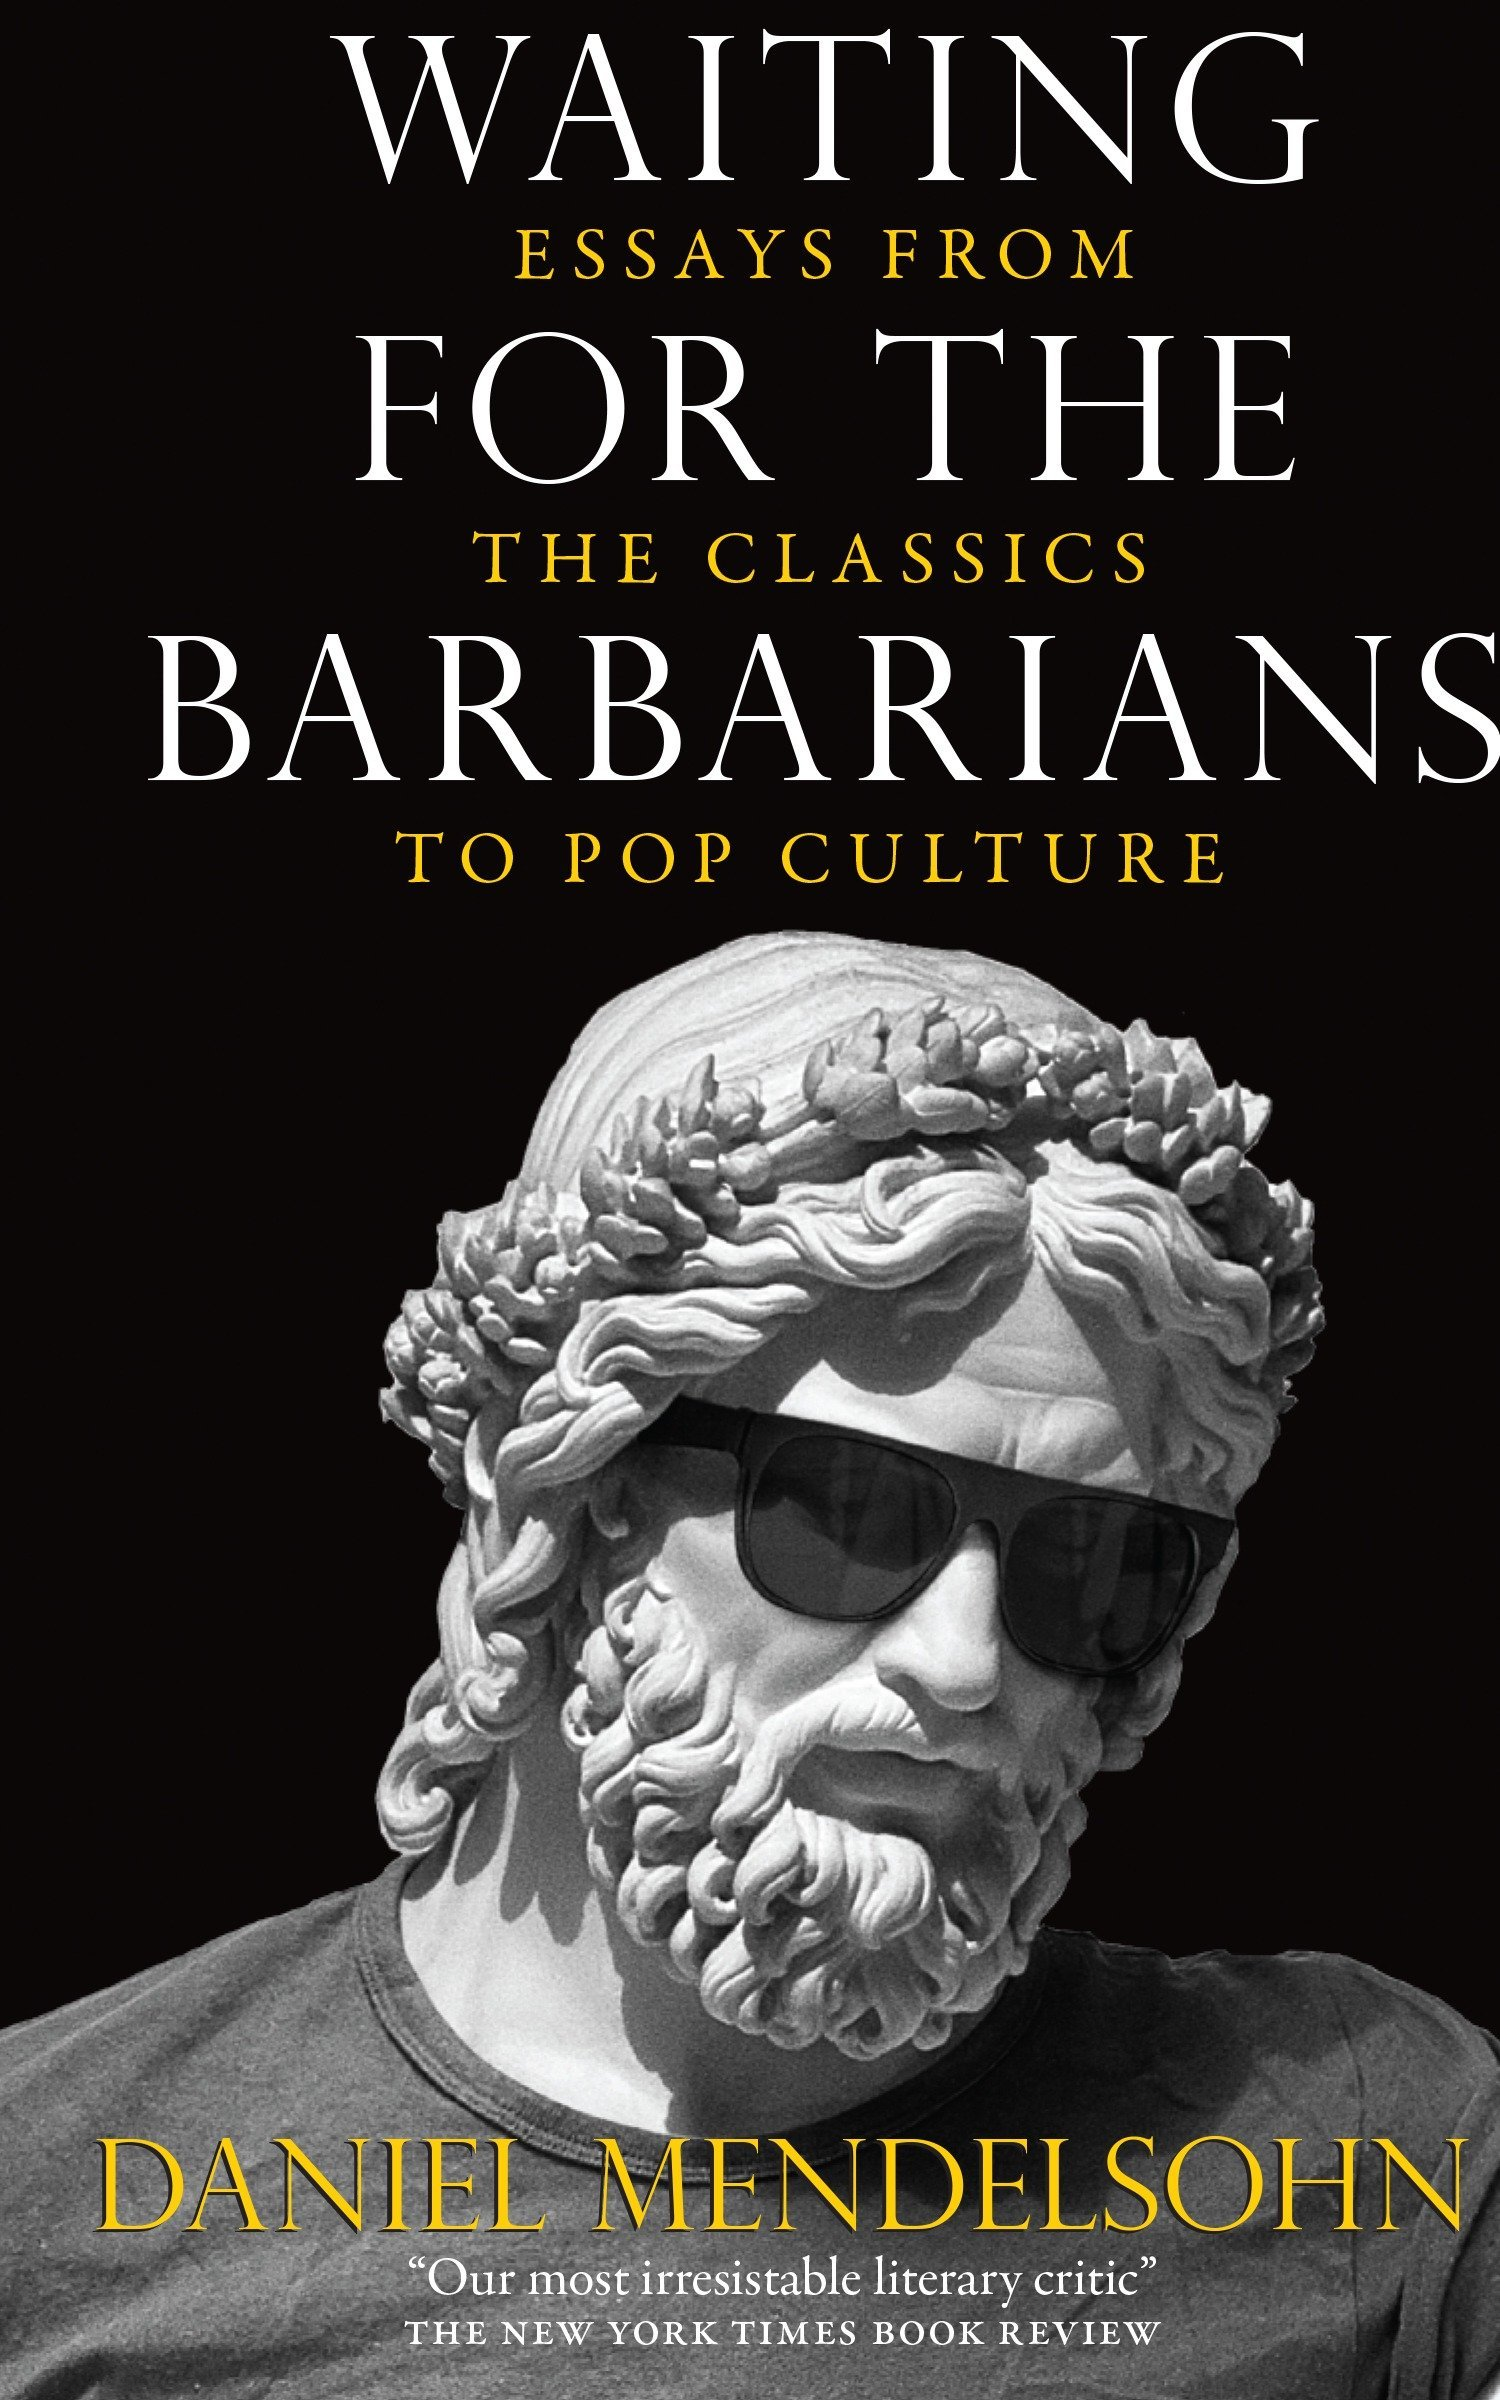 High School Essays Examples Waiting For The Barbarians Essays From The Classics To Pop Culture Daniel  Mendelsohn  Amazoncom Books What Is A Thesis Statement In A Essay also English As A Global Language Essay Waiting For The Barbarians Essays From The Classics To Pop Culture  Yellow Wallpaper Essays